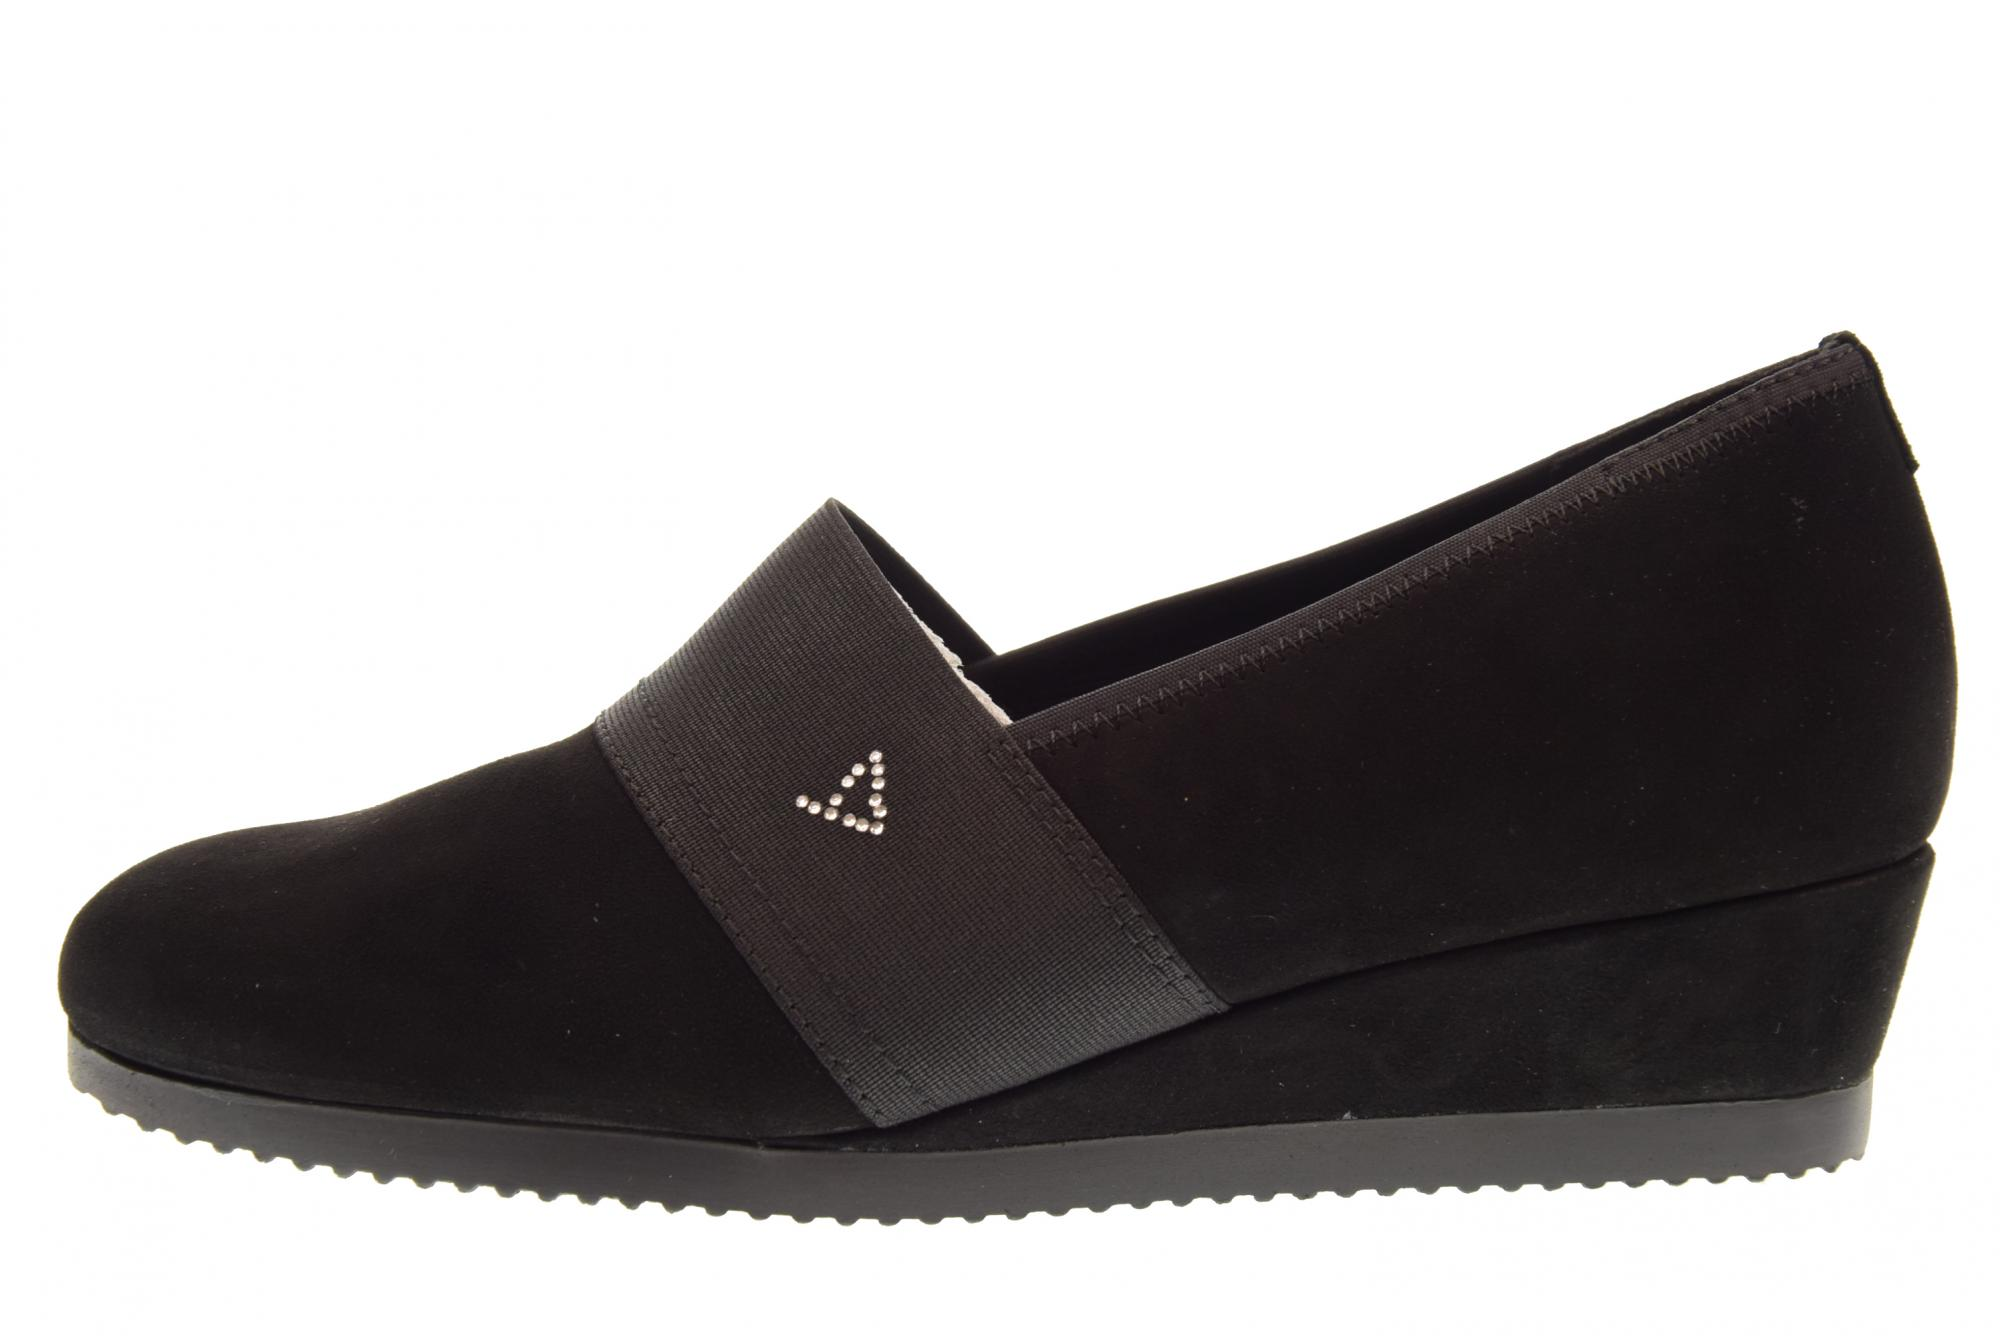 Vallegreen A18f A18f A18f shoes femme shoes accollate 36301 2e6103